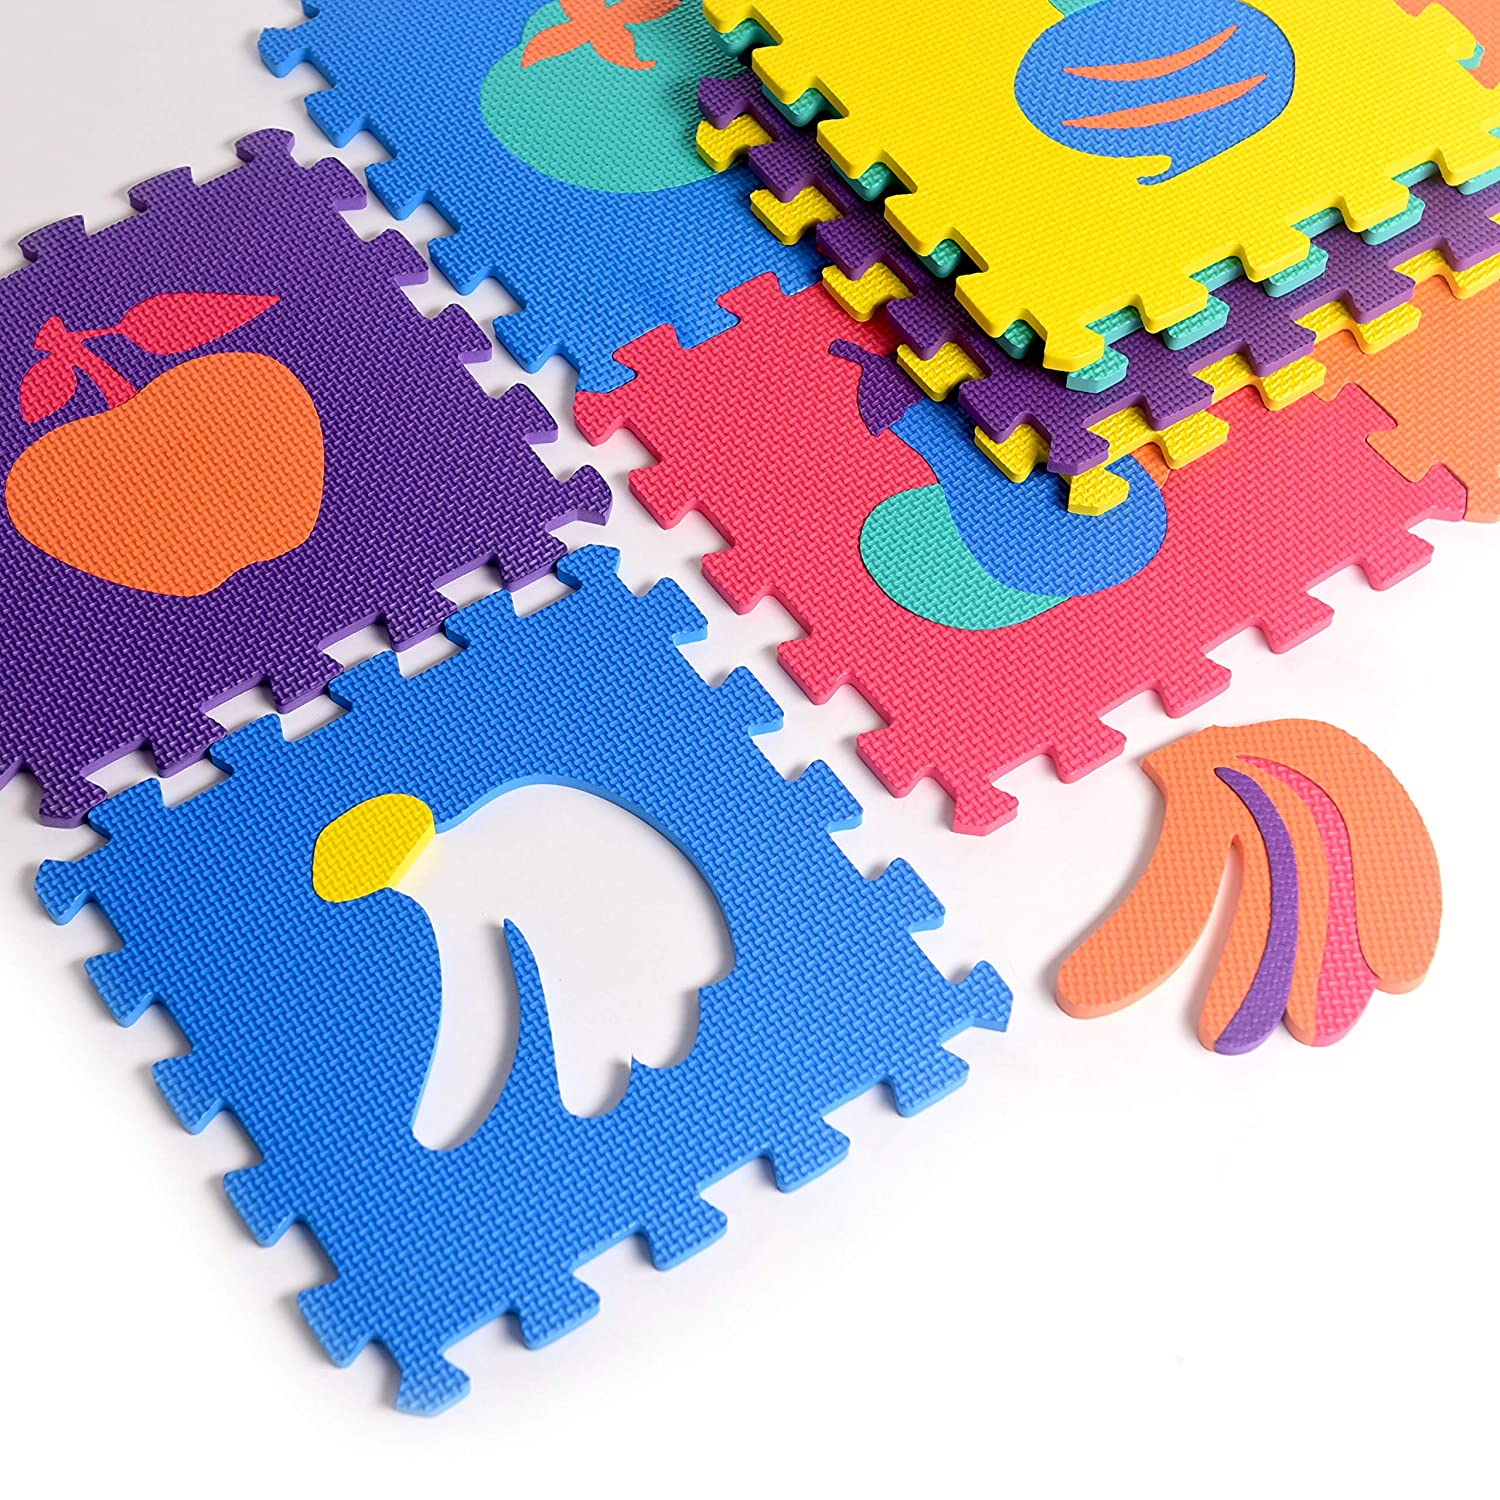 Fruit Rubber EVA Foam Puzzle Play Mat Floor. 10 Interlocking playmat Tiles Tile 12X12 Inch 36 Sq.Feet Coverage . Ideal Crawling Baby Infant Classroom Toddlers Kids Gym Workout